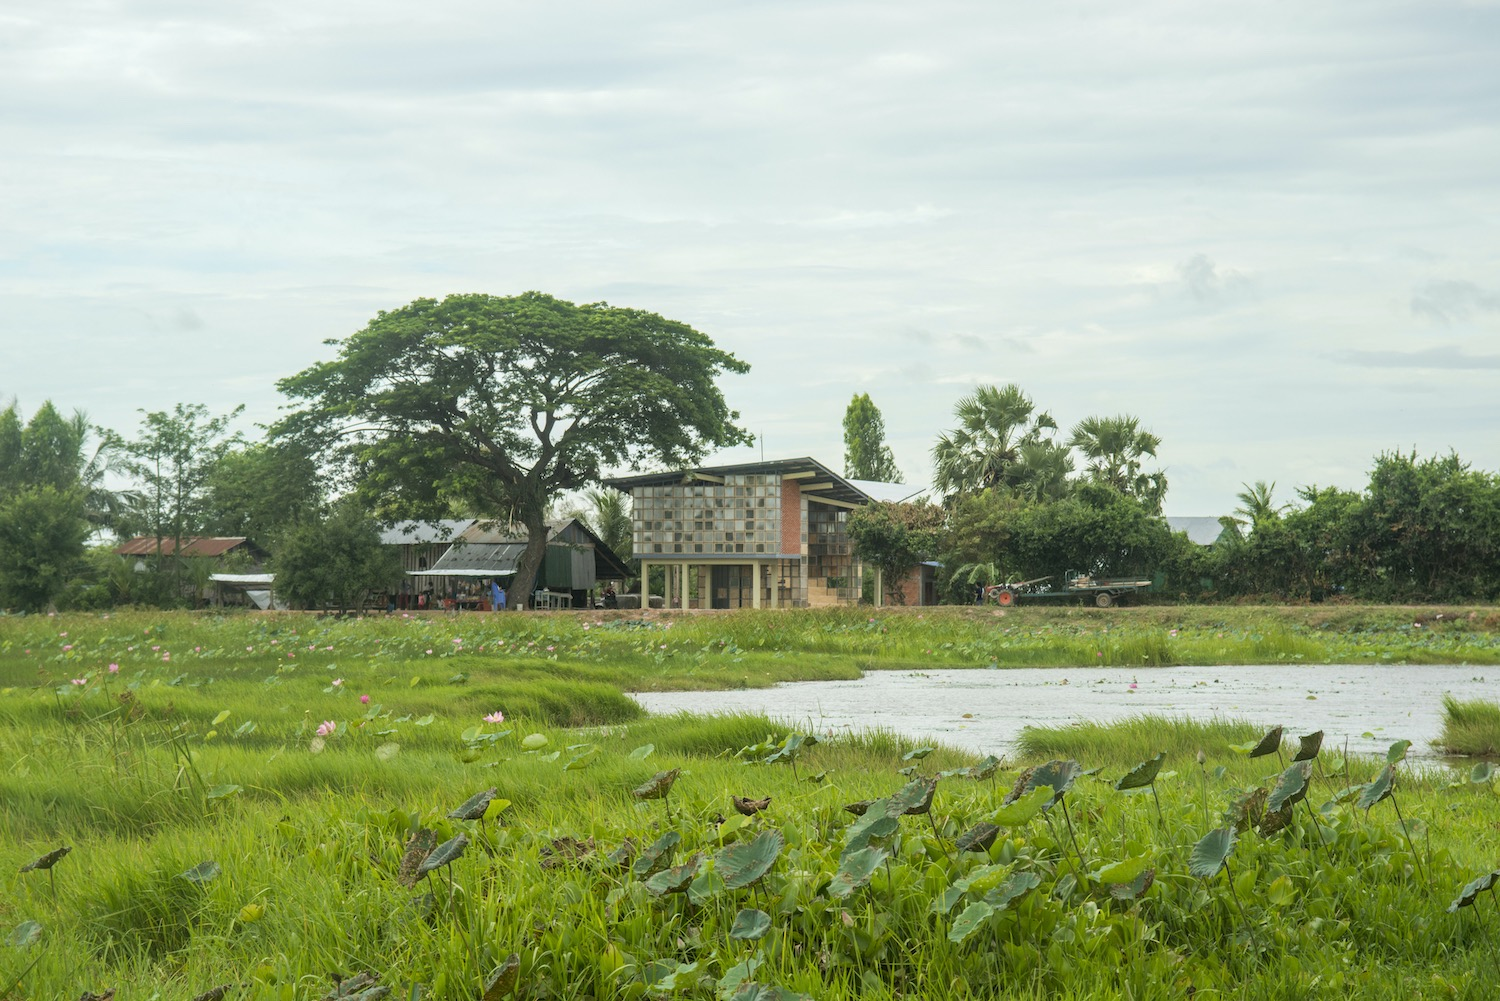 village with beautiful green landscape in Cambodia